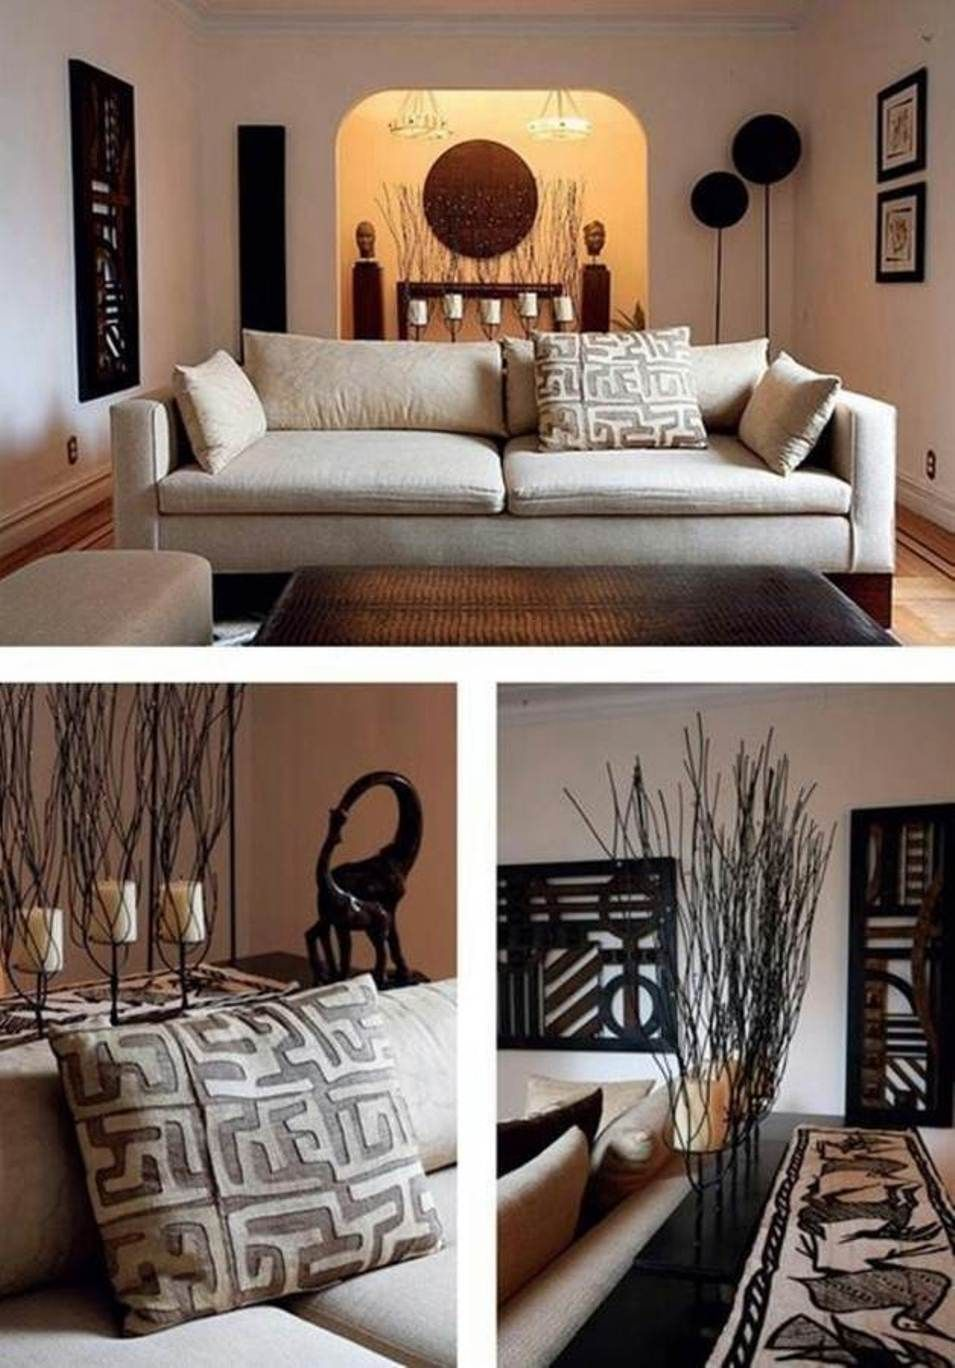 Living Room Decorating Ideas American Style south african decorating ideas | african/tribal/global design